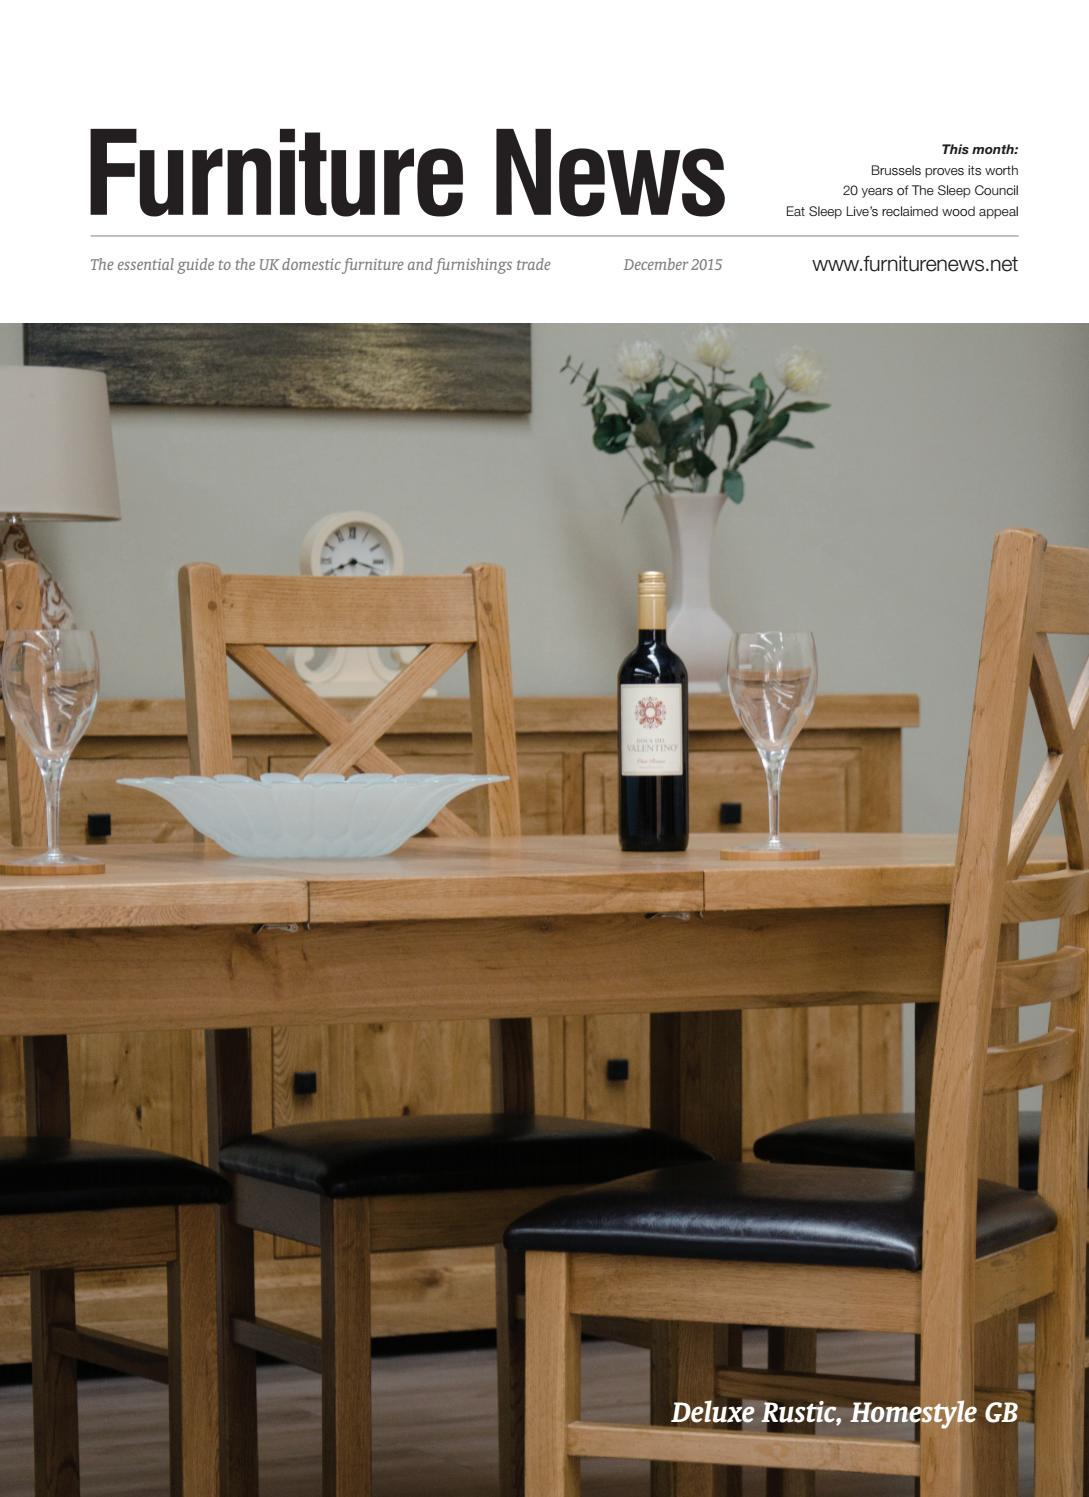 Furniture news 321 by gearing media group ltd issuu for Furniture 321